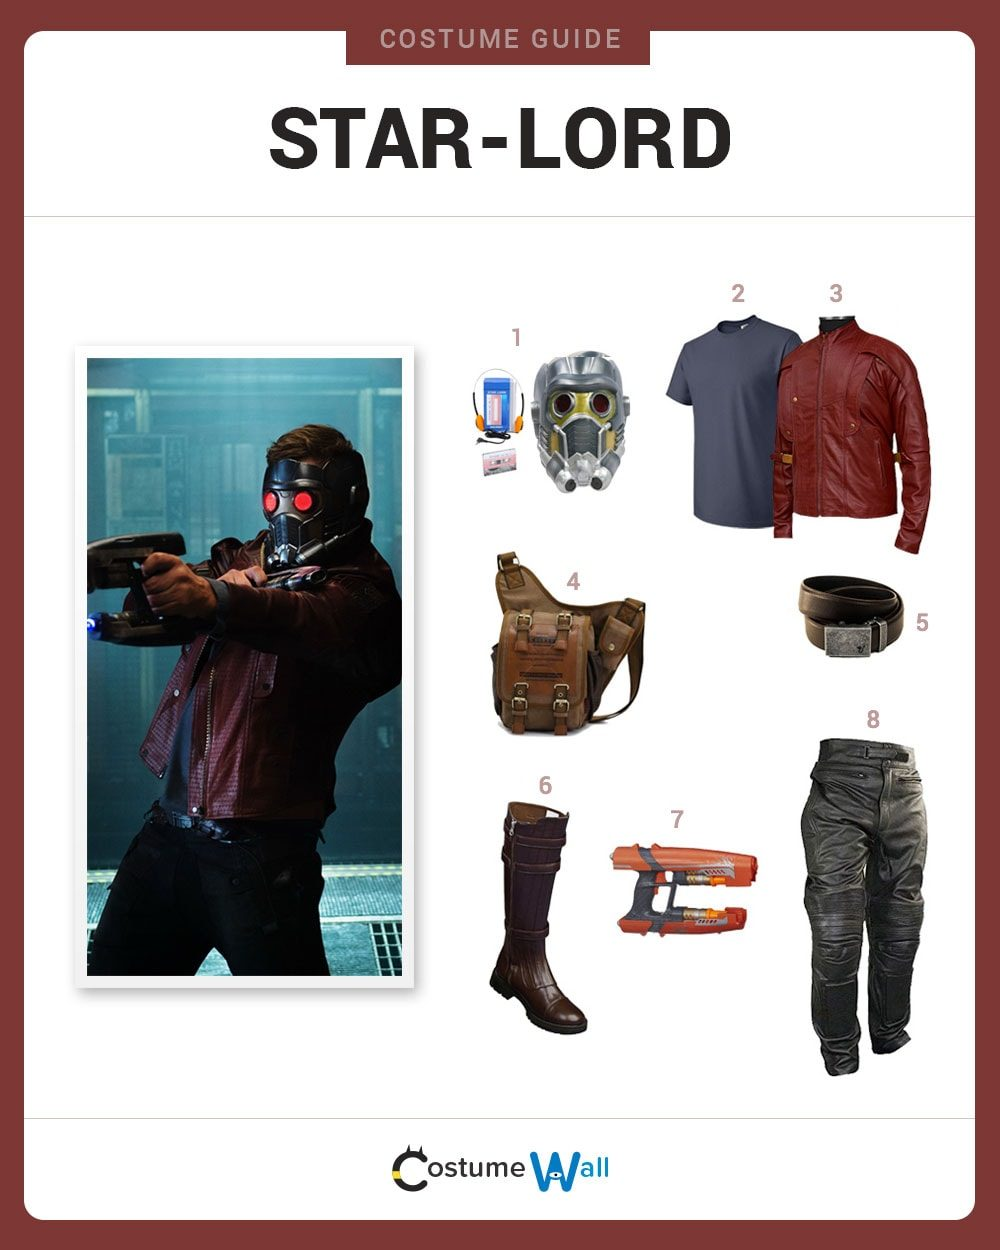 Star-Lord Costume Guide